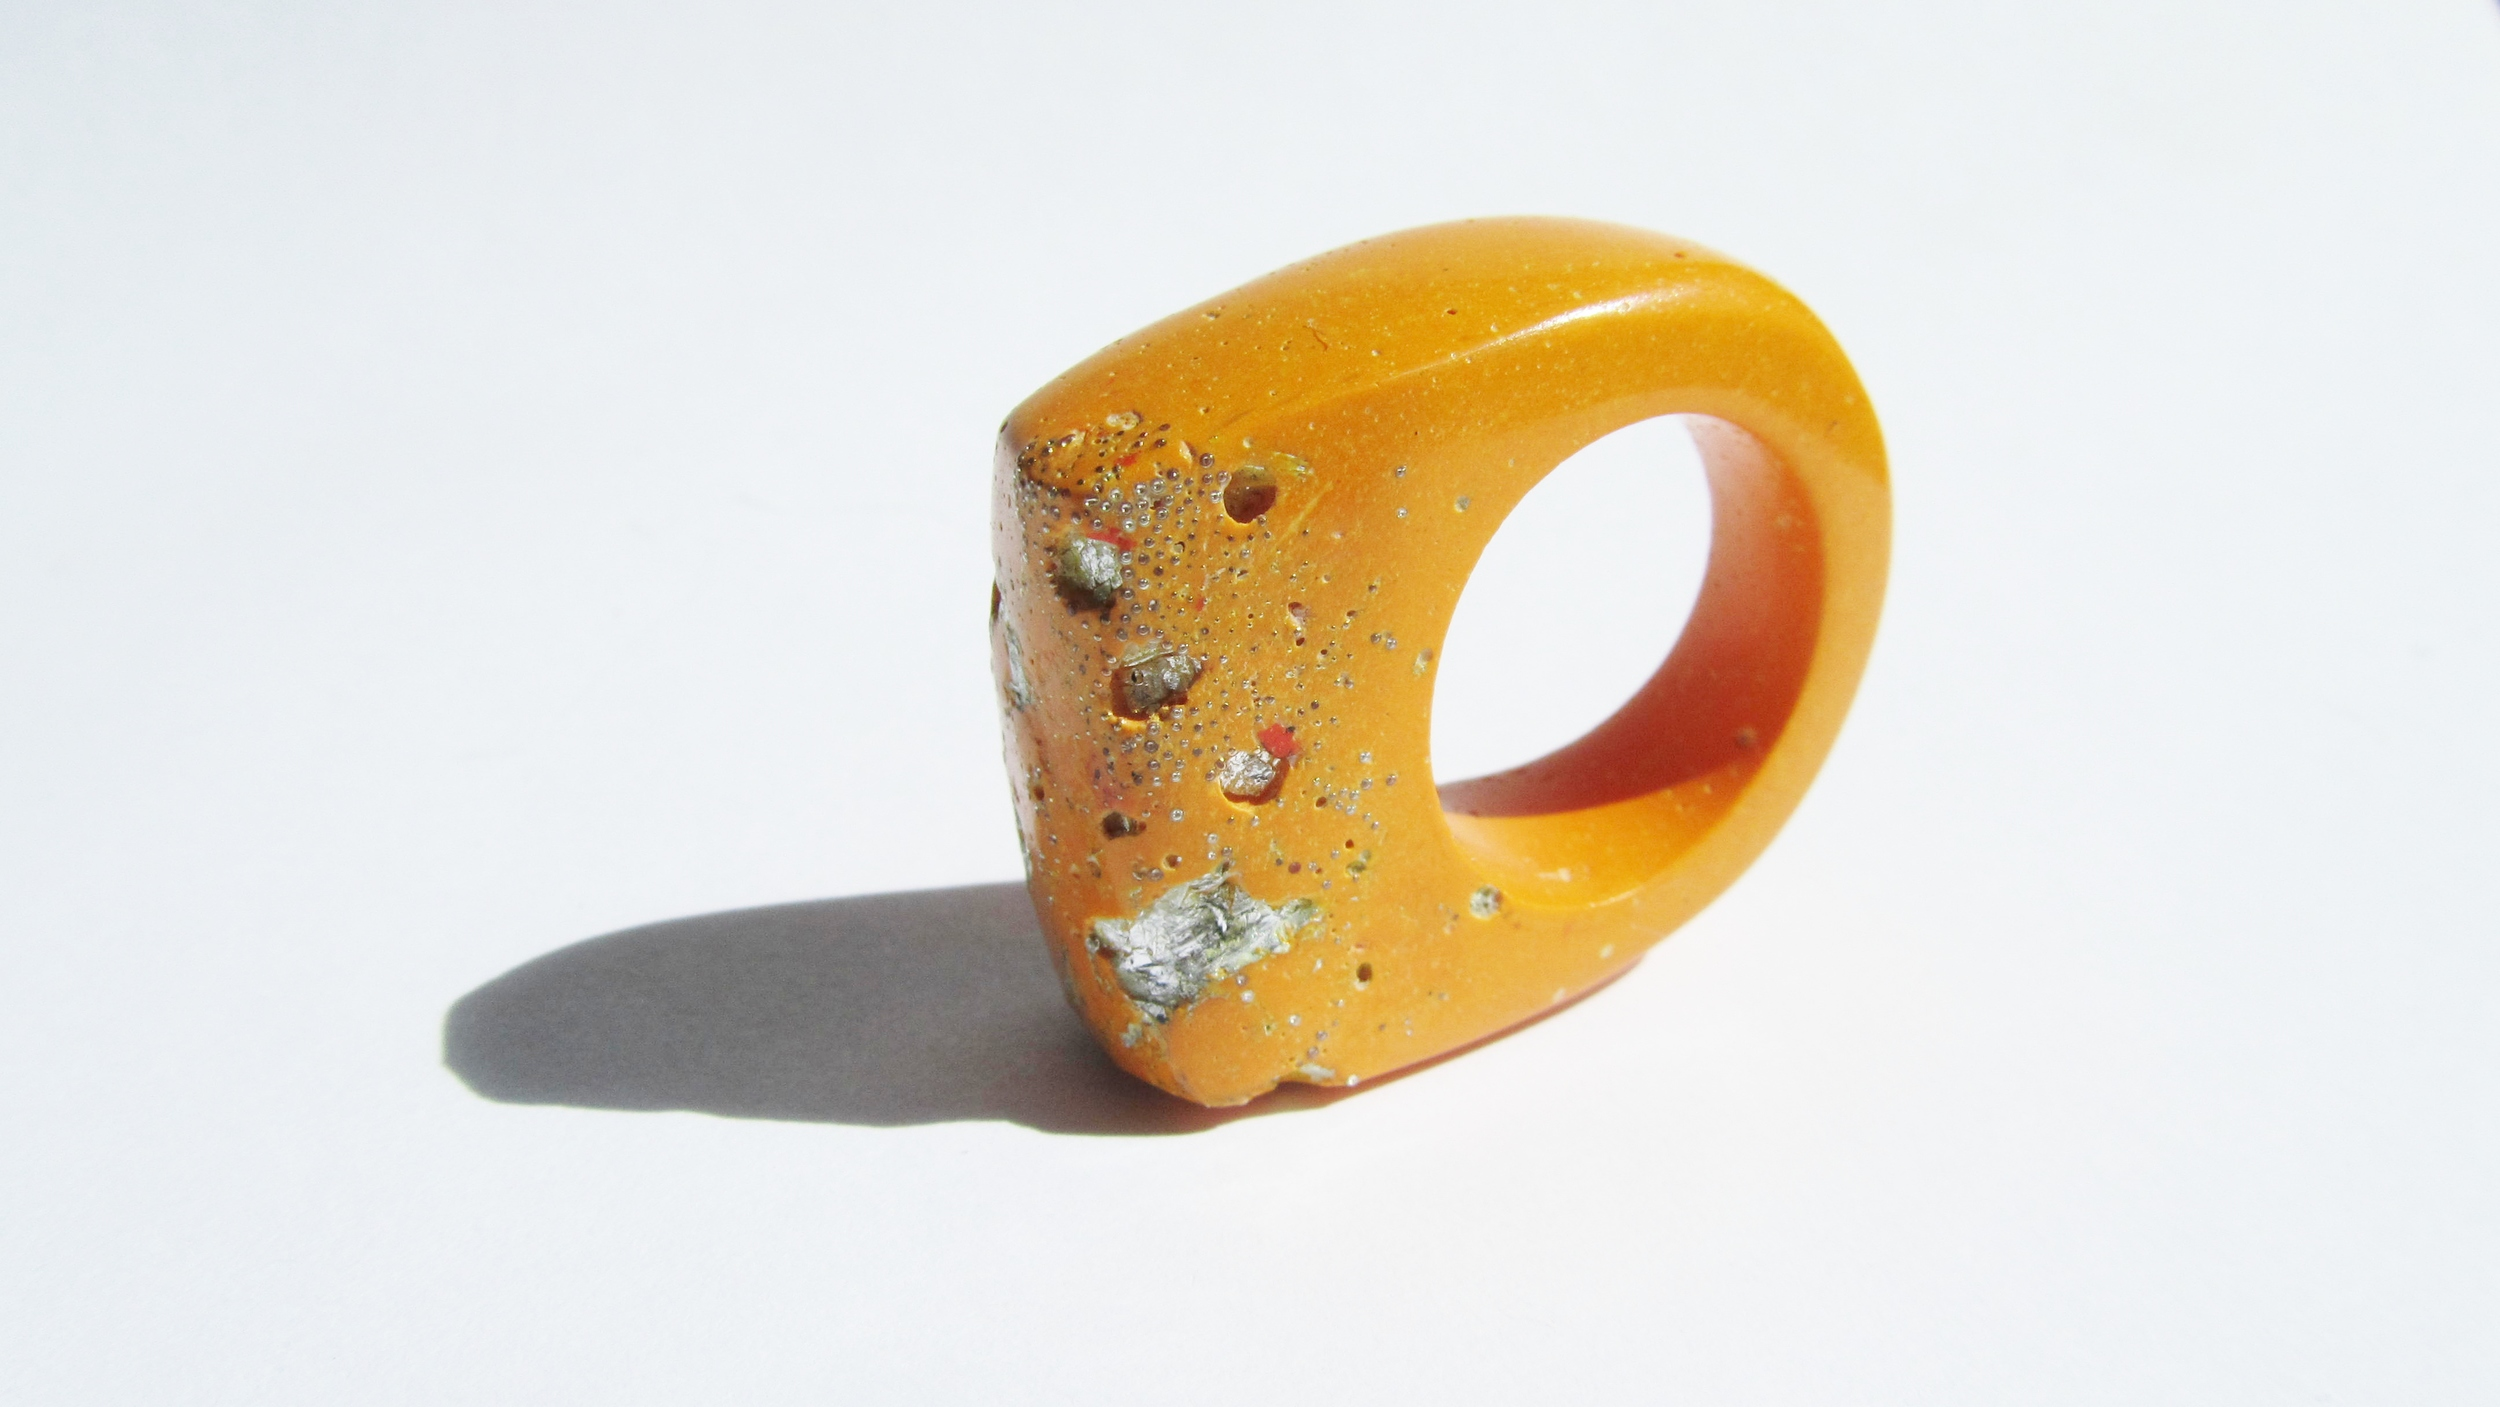 jade mellor hewn ring orange silver metallic caviar Q 3.JPG